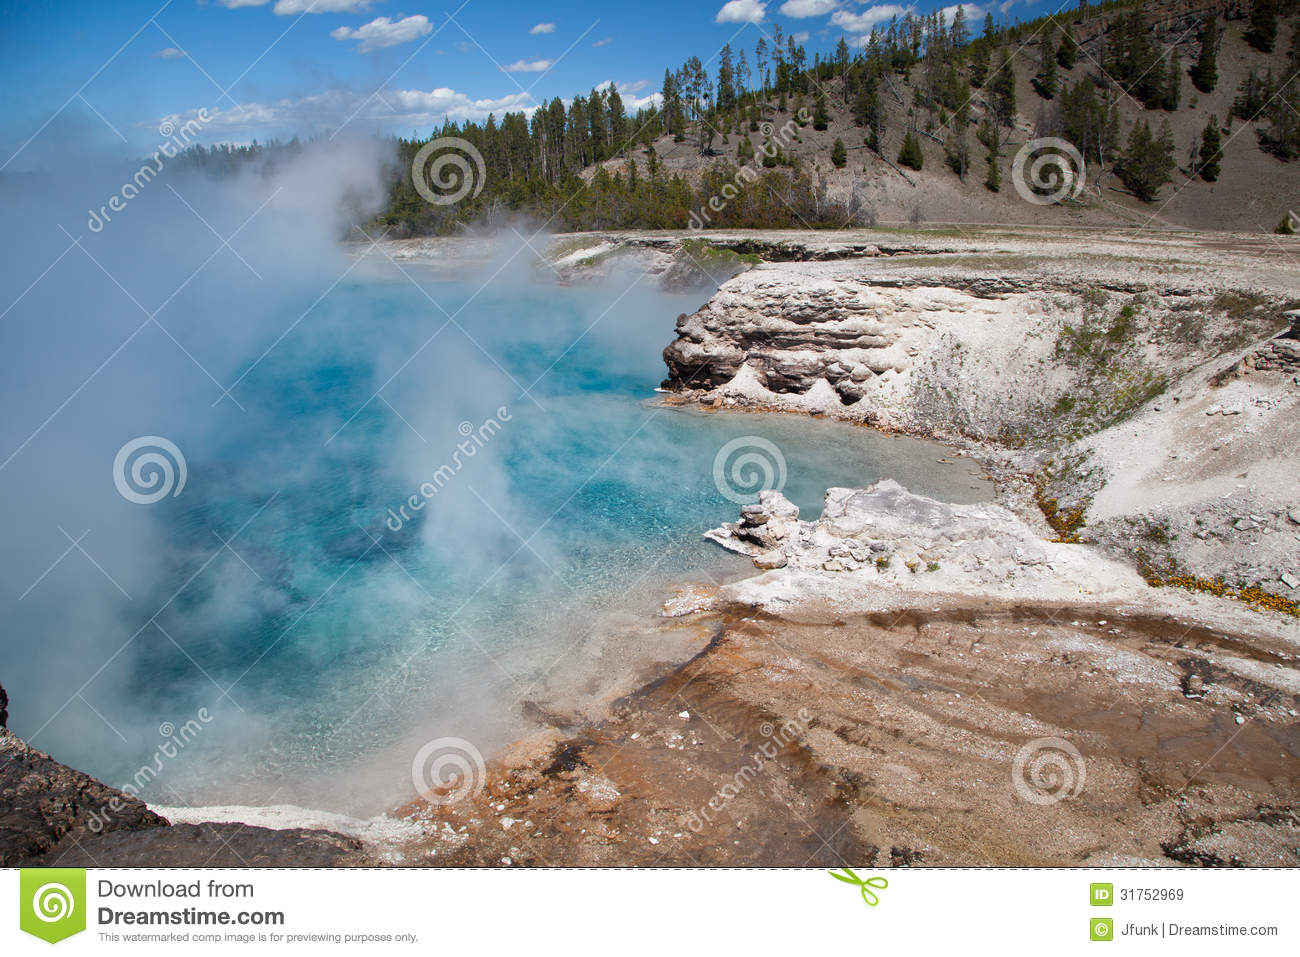 Cratera excelsior do geyser, Yellowstone